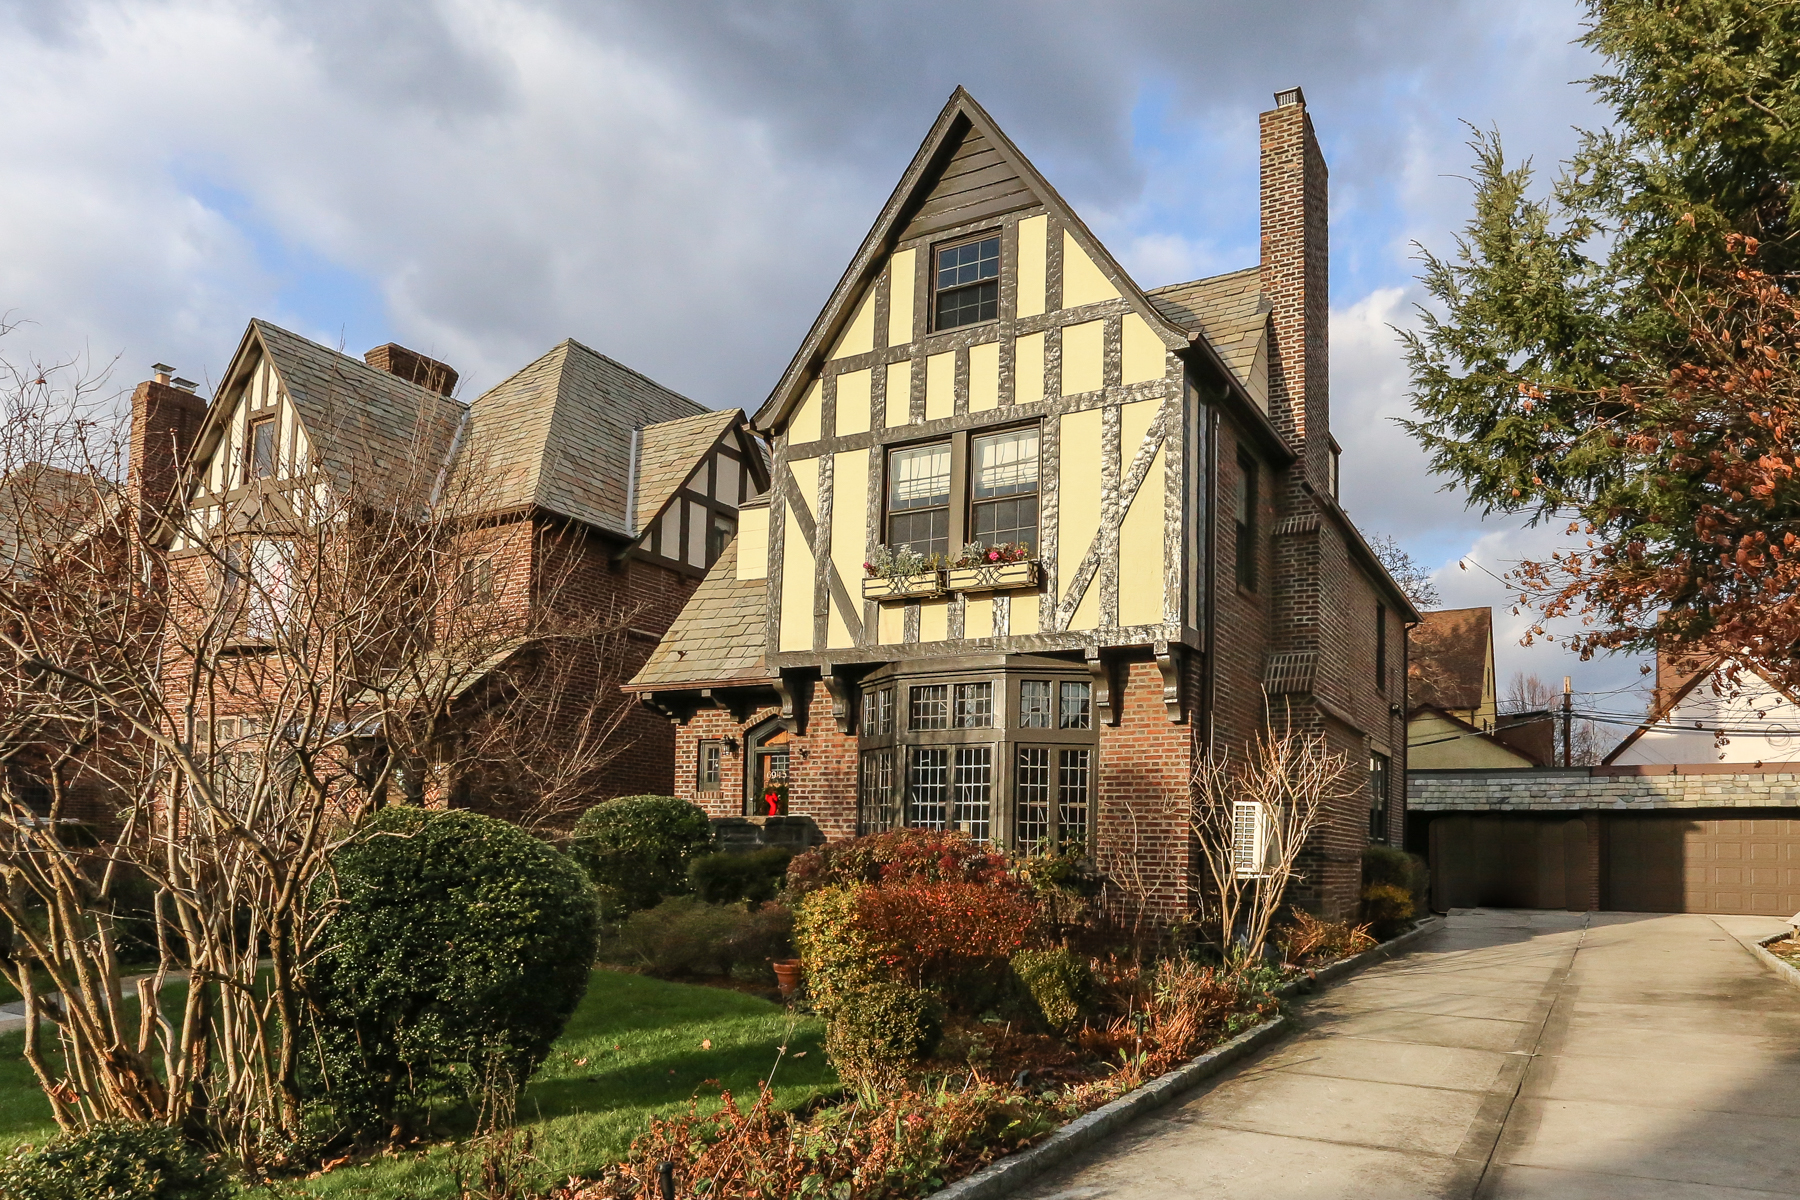 """Single Family Home for Rent at """"BREATHTAKING TUDOR"""" Forest Hills, New York 11375 United States"""